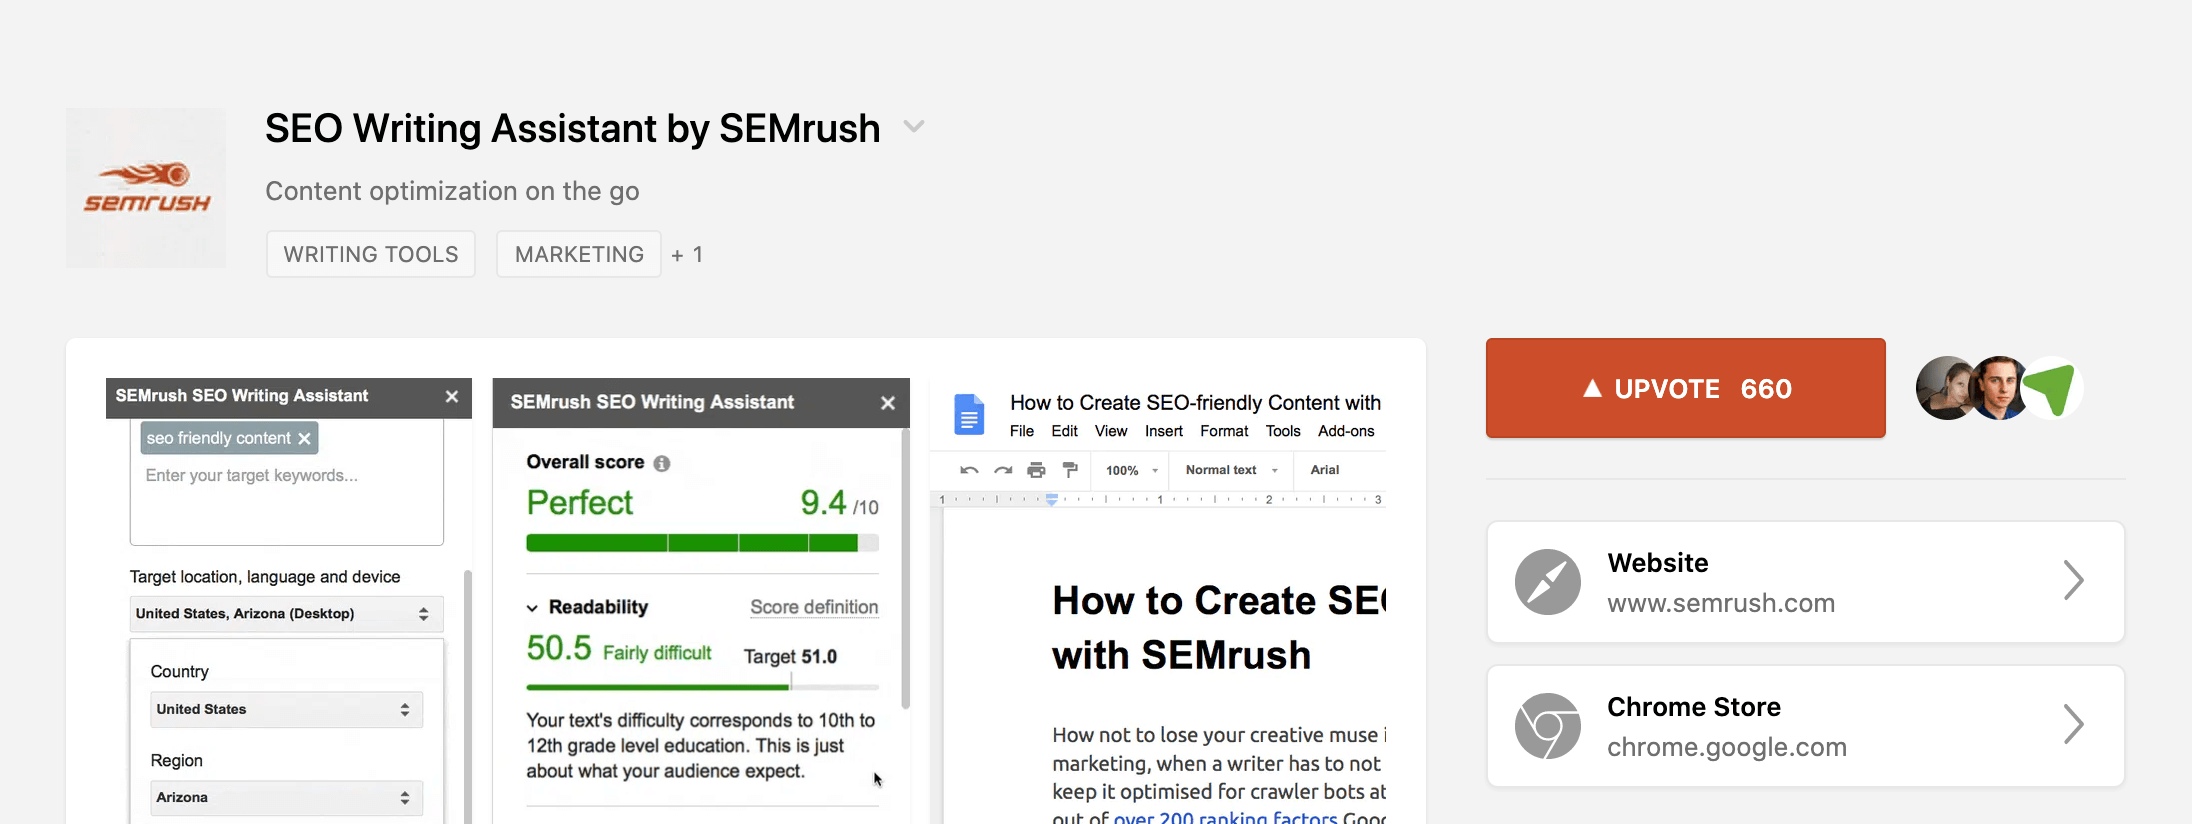 SEMrush SEO Writing Assistant Review – Product Hunt